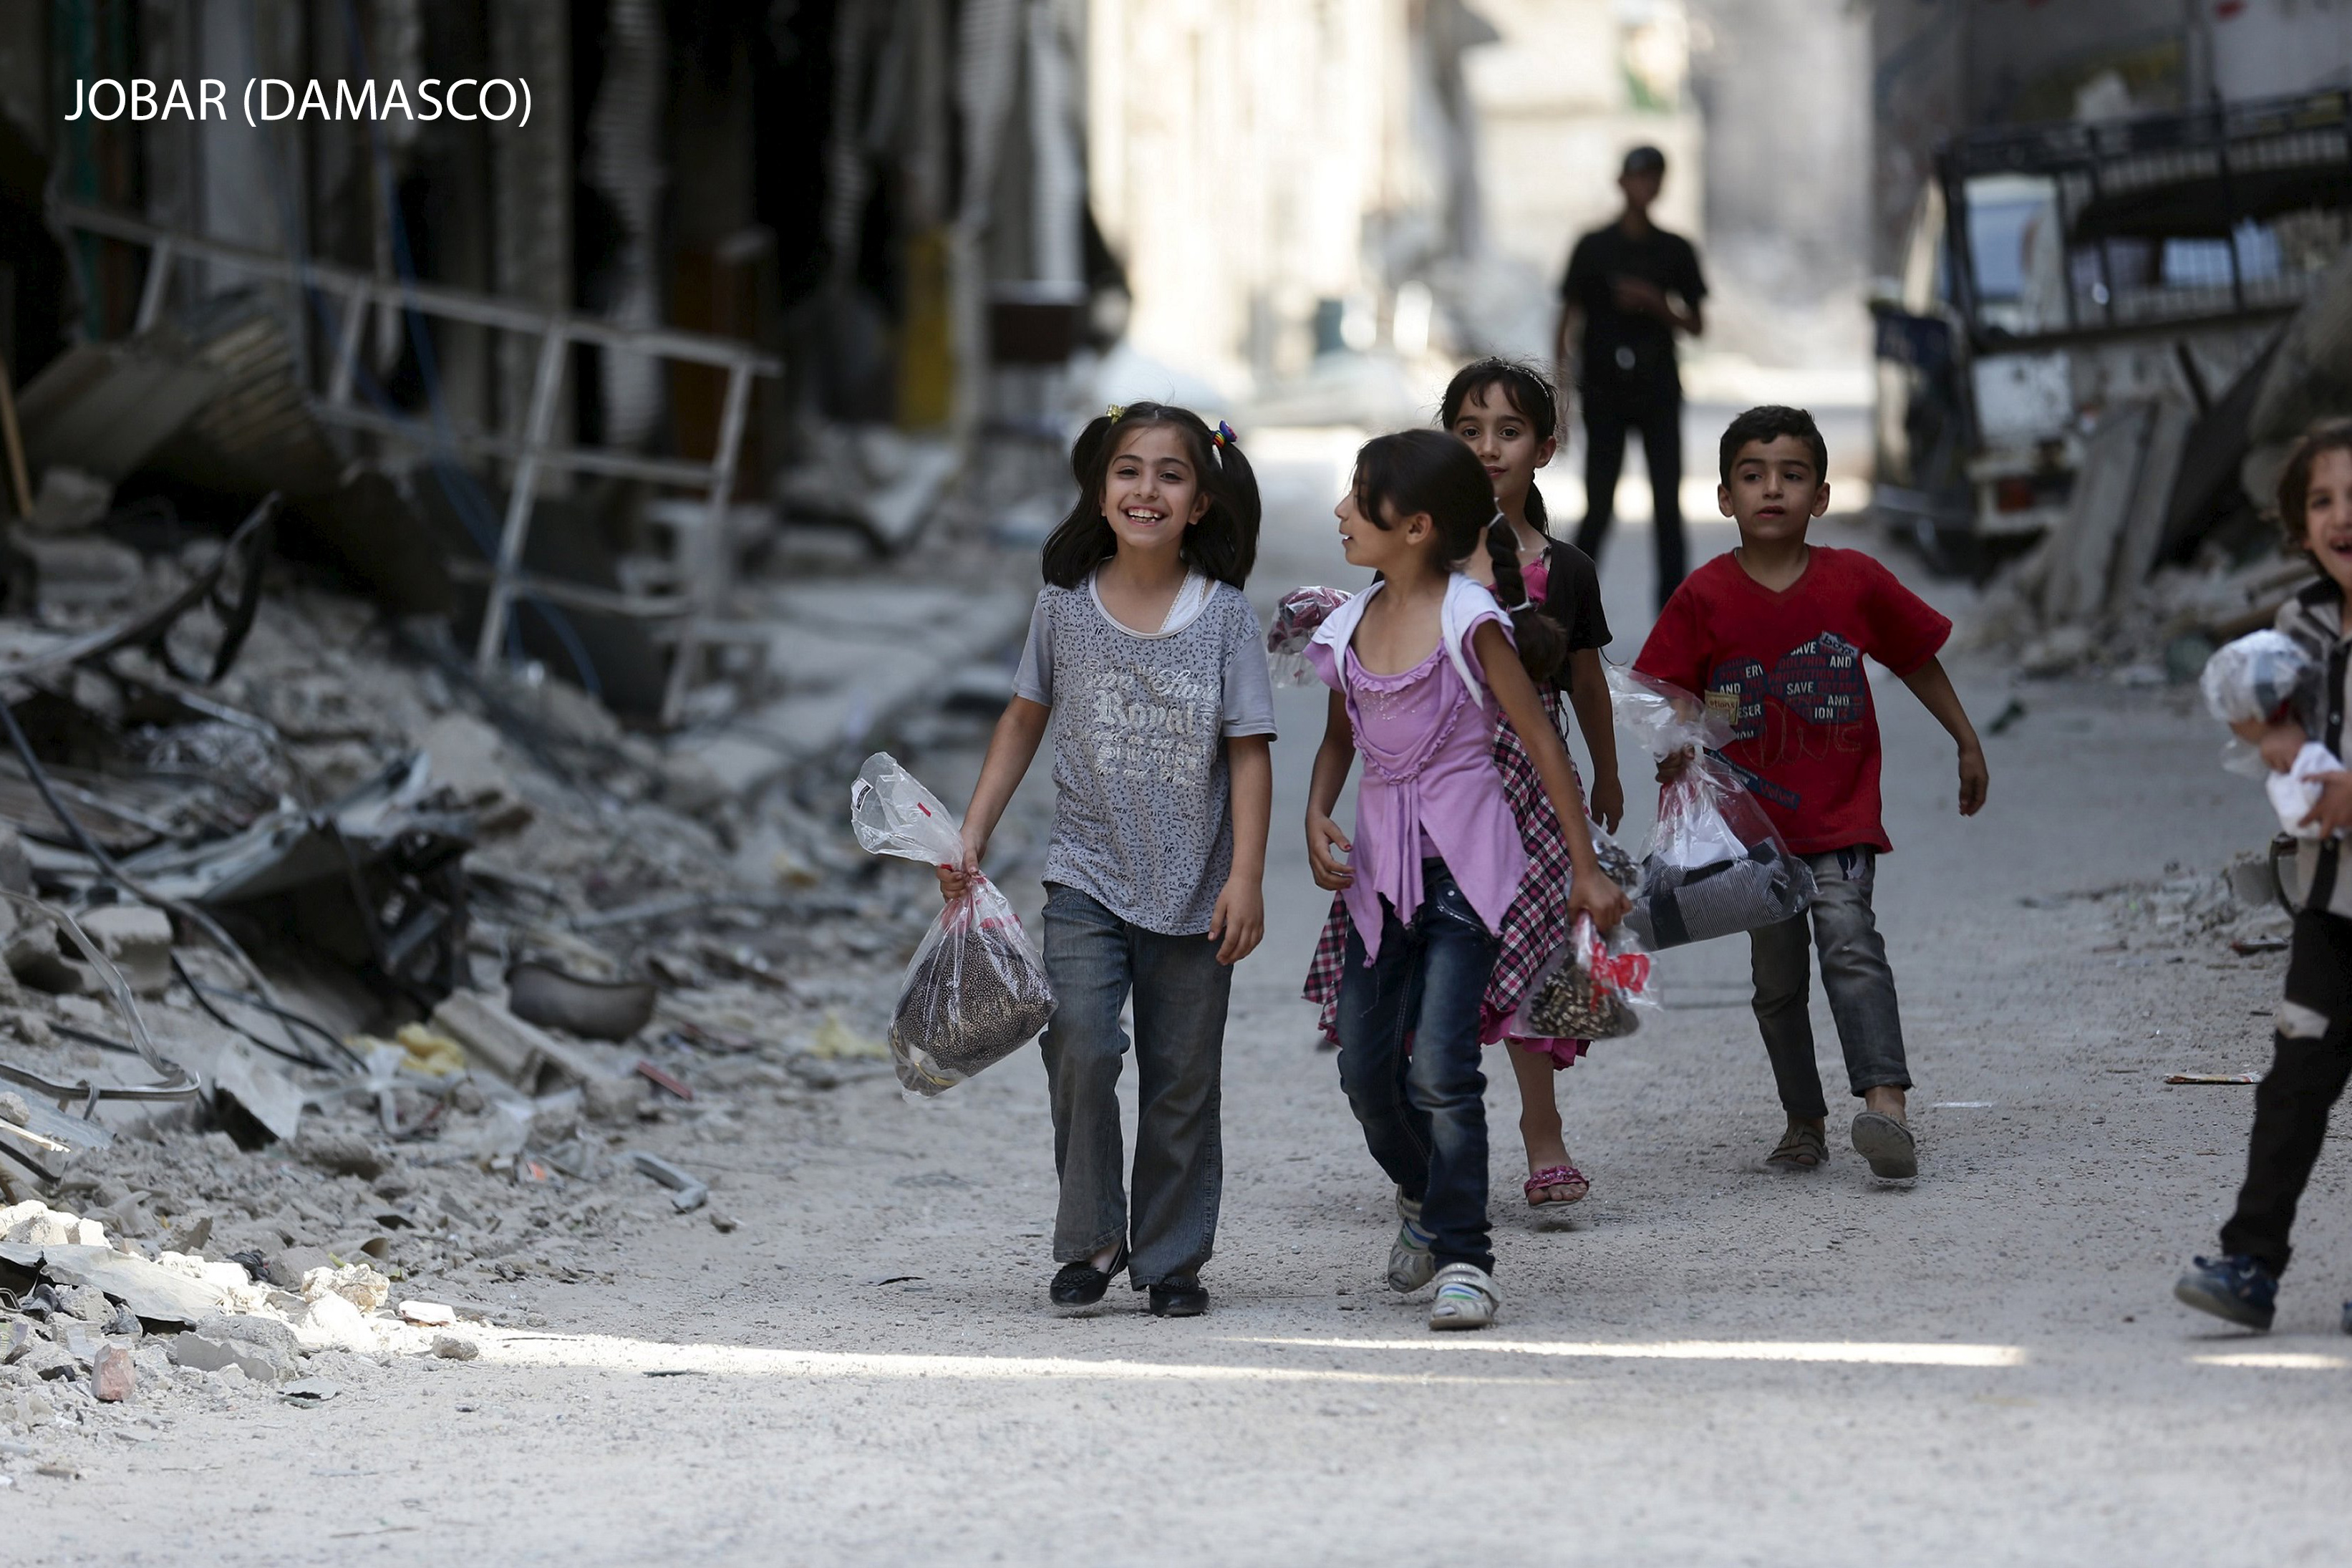 Children carry bags of new clothes ahead of the Eid al-Fitr holiday marking the end of Ramadan in Jobar, a suburb of Damascus, Syria July 15, 2015. Picture taken July 15, 2015. REUTERS/Bassam Khabieh